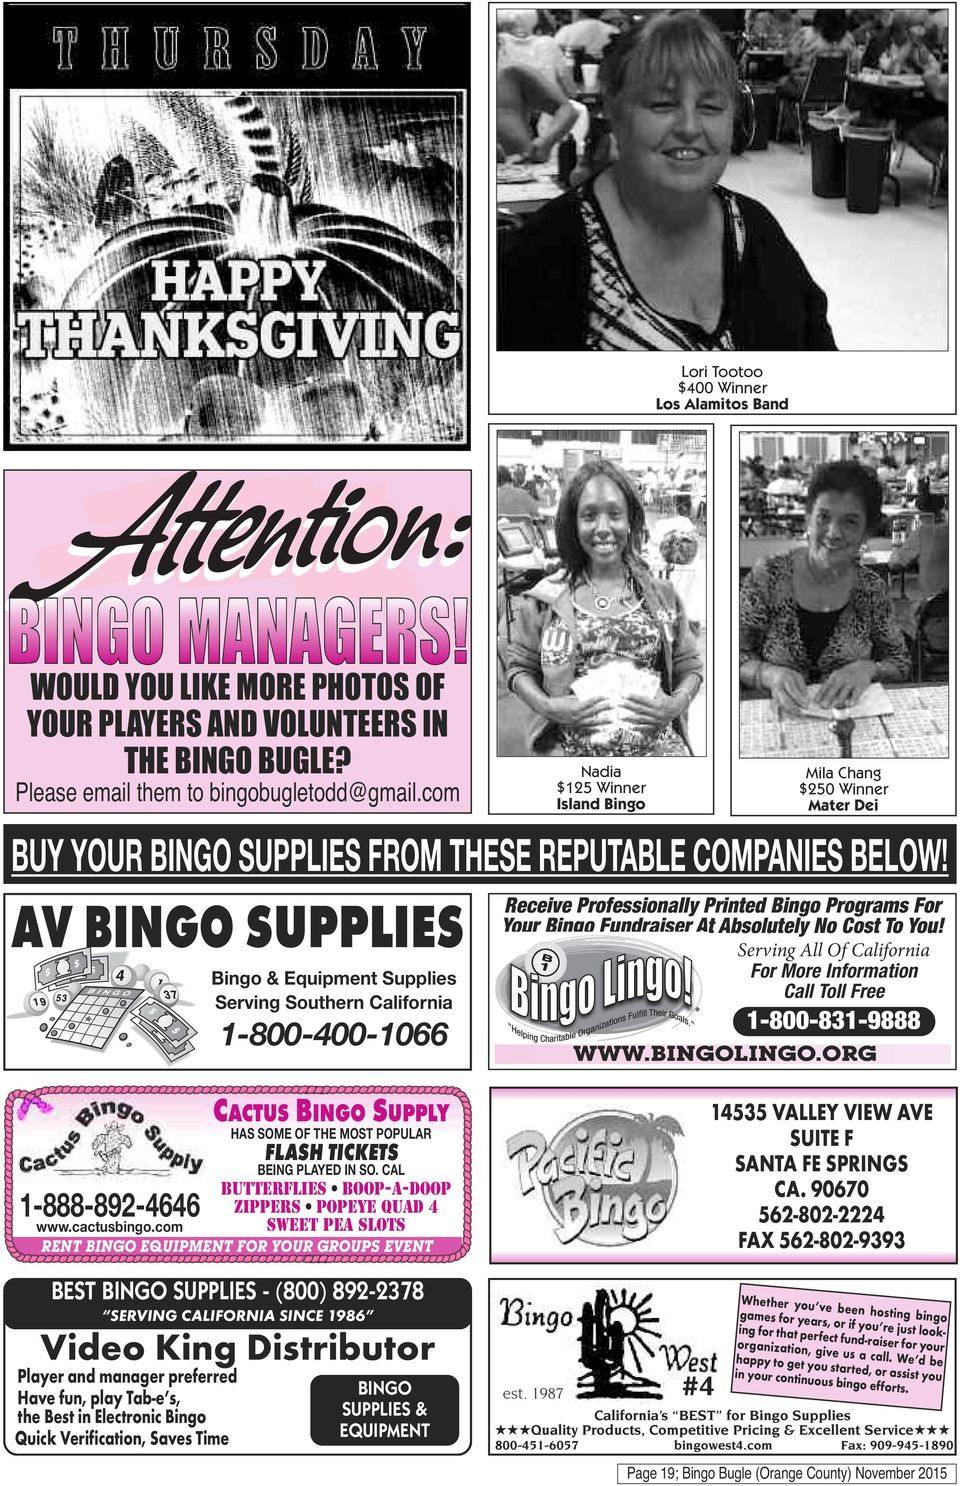 Receive Professionally Printed Bingo Programs For Your Fundraiser At Absolutely No